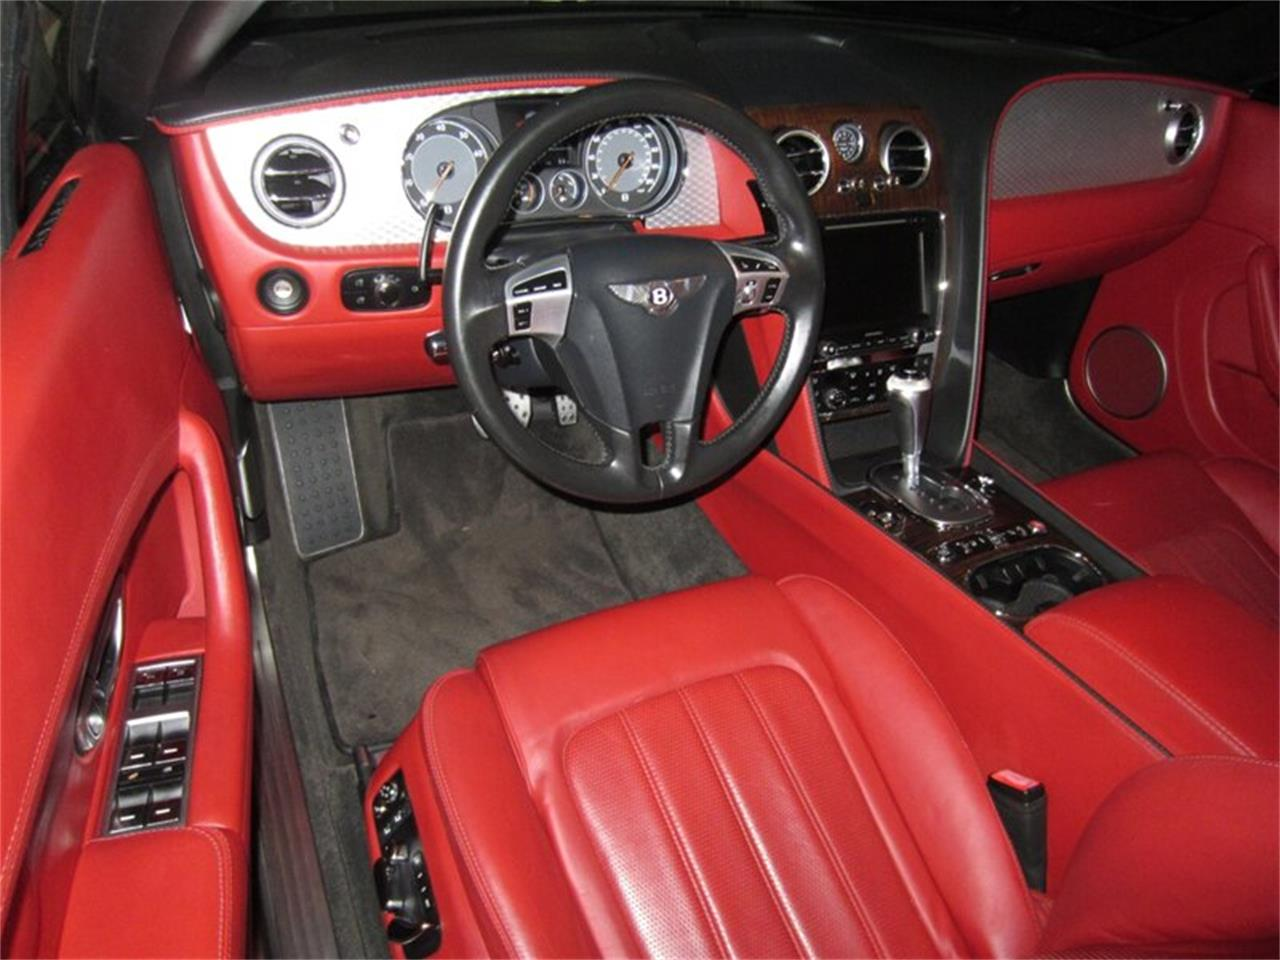 2013 Bentley Continental GTC V8 for sale in Delray Beach, FL – photo 11